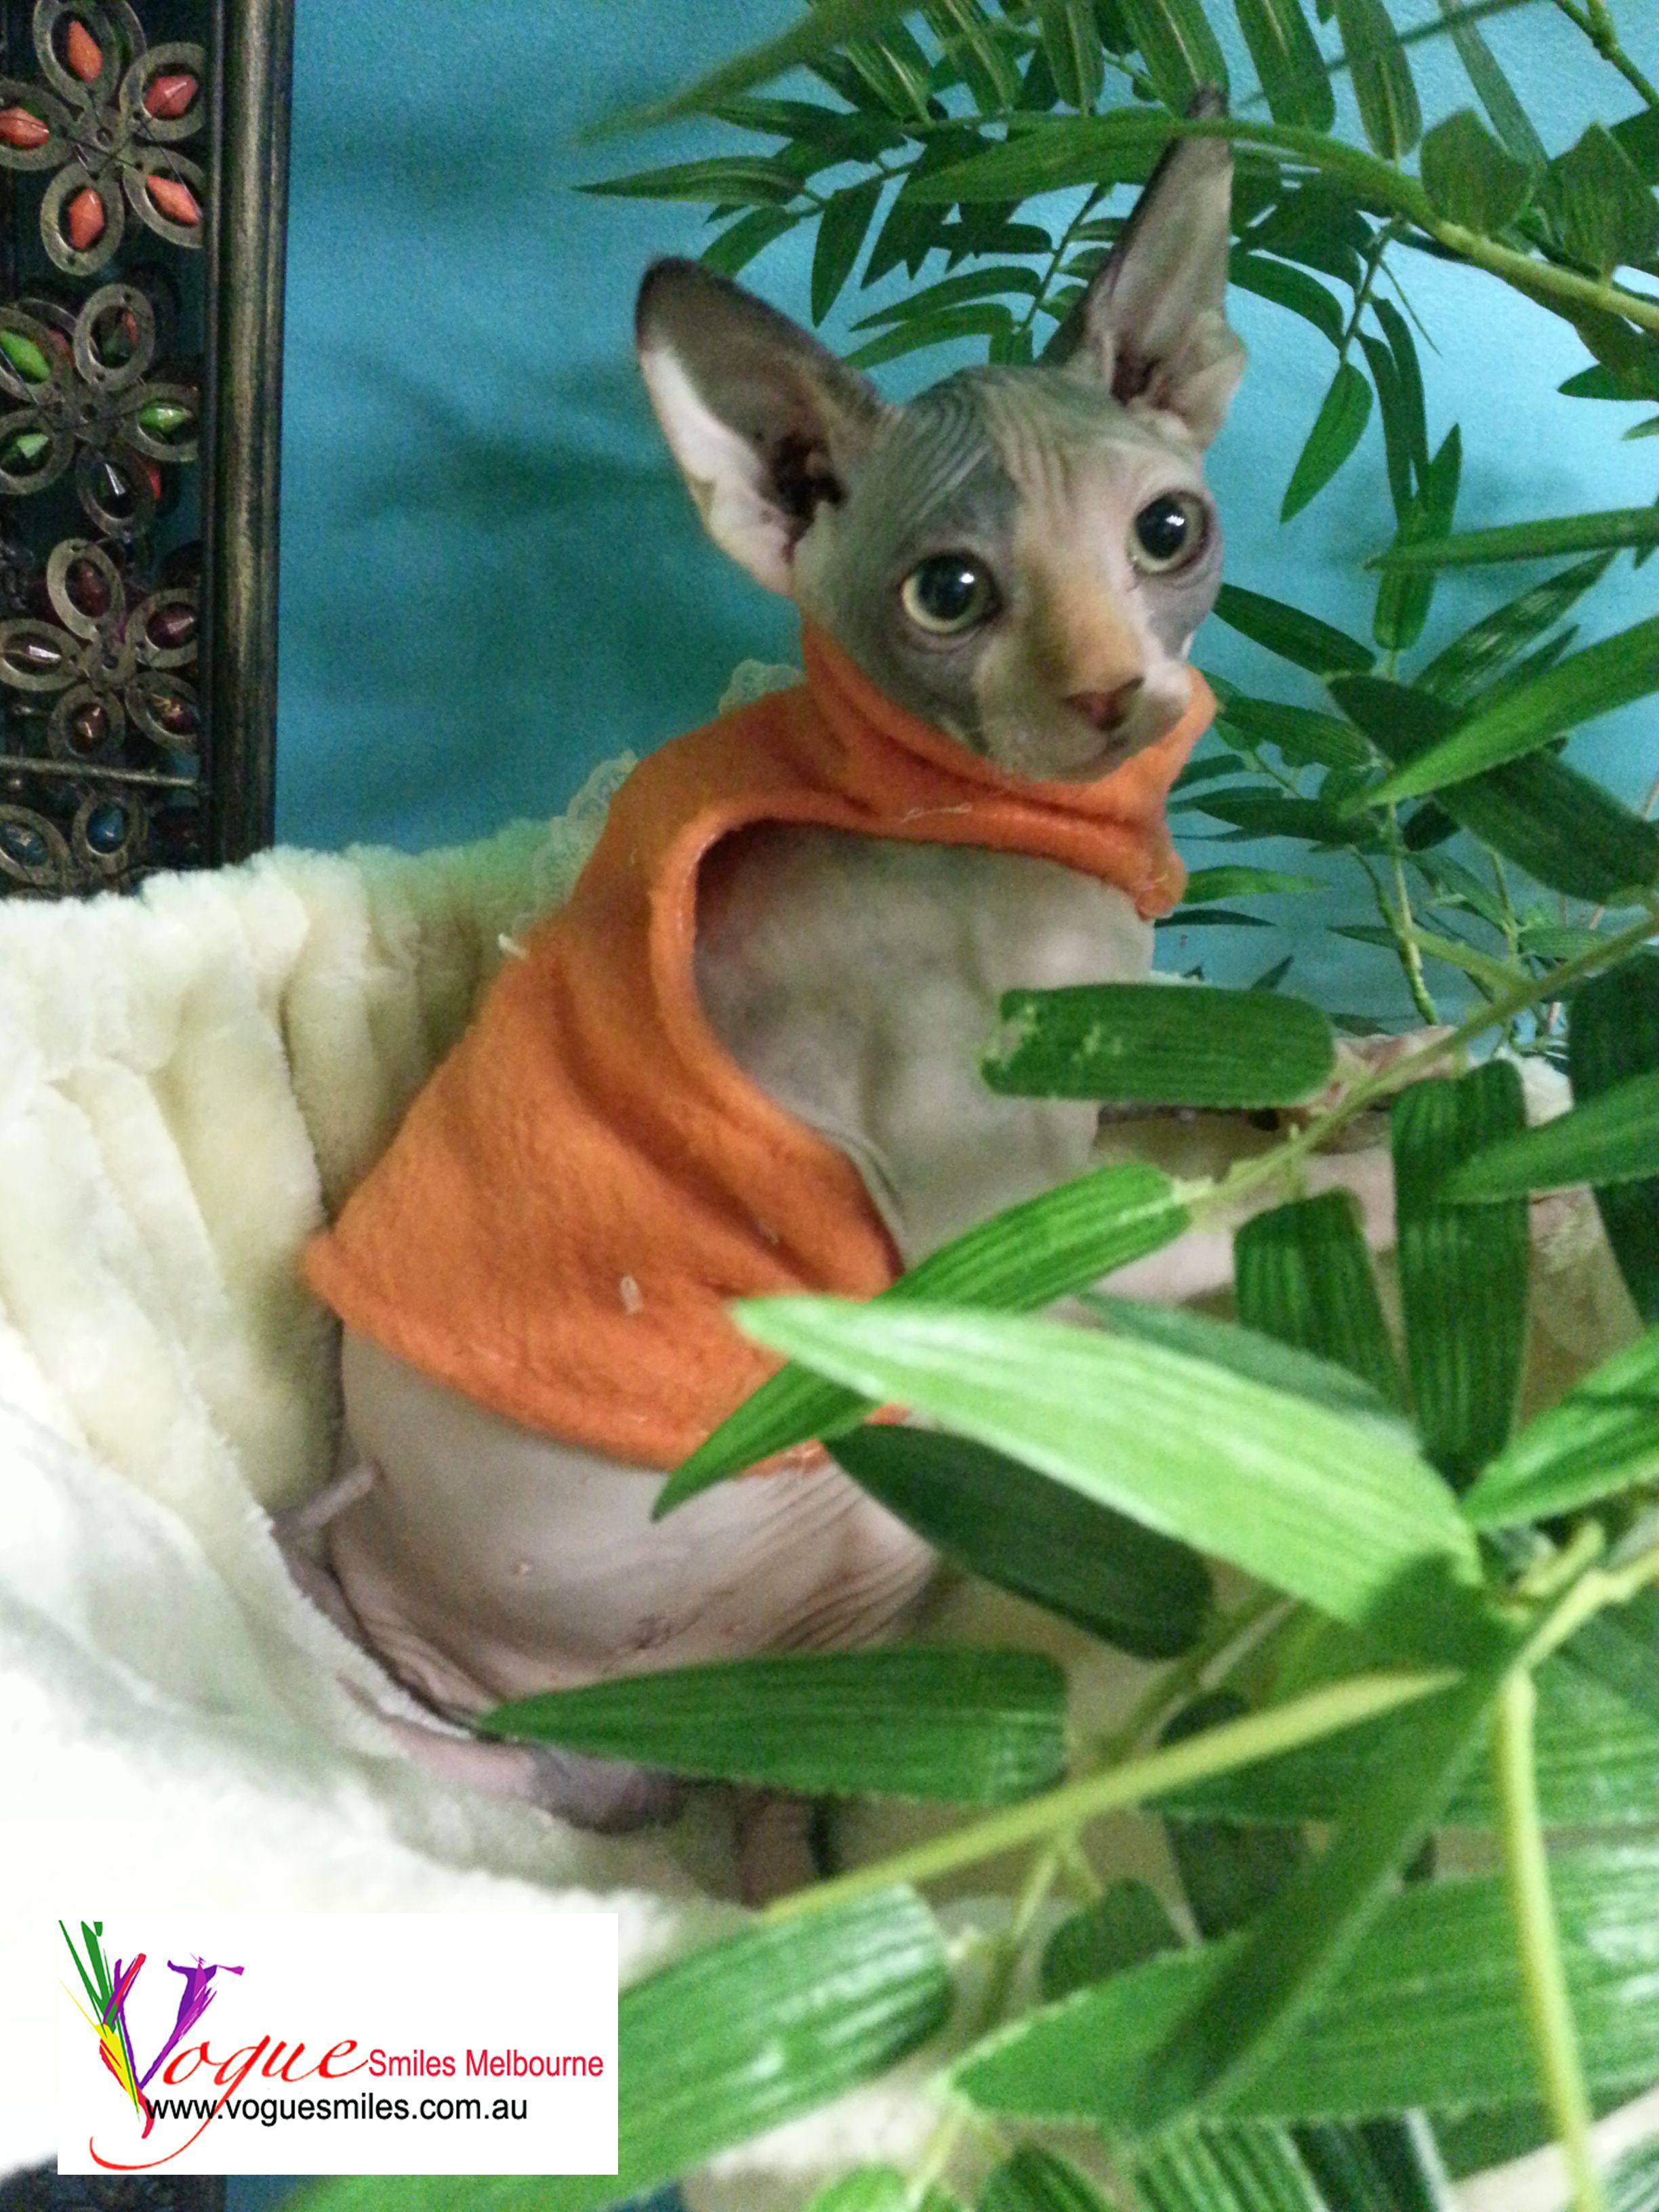 Sphynx Kitten Of The Dentist Melbourne Dr Zenaidy Castro Of Vogue Smiles Melbourne Dentist In Melbourne City Cbd 3 Kittens In Costumes Cute Animals Cute Cats